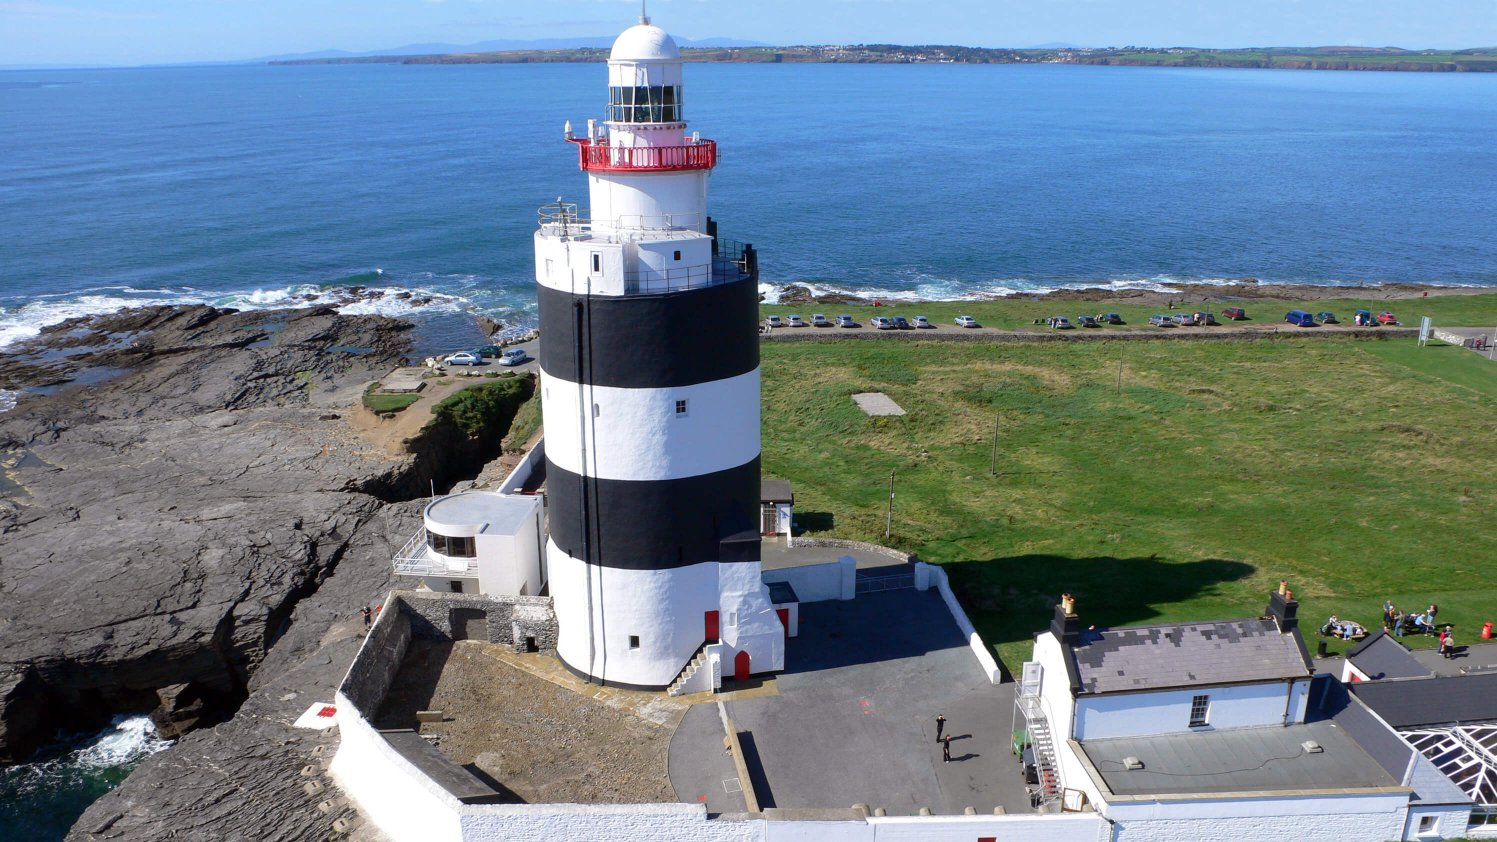 Hook head lighthouse in Wexford